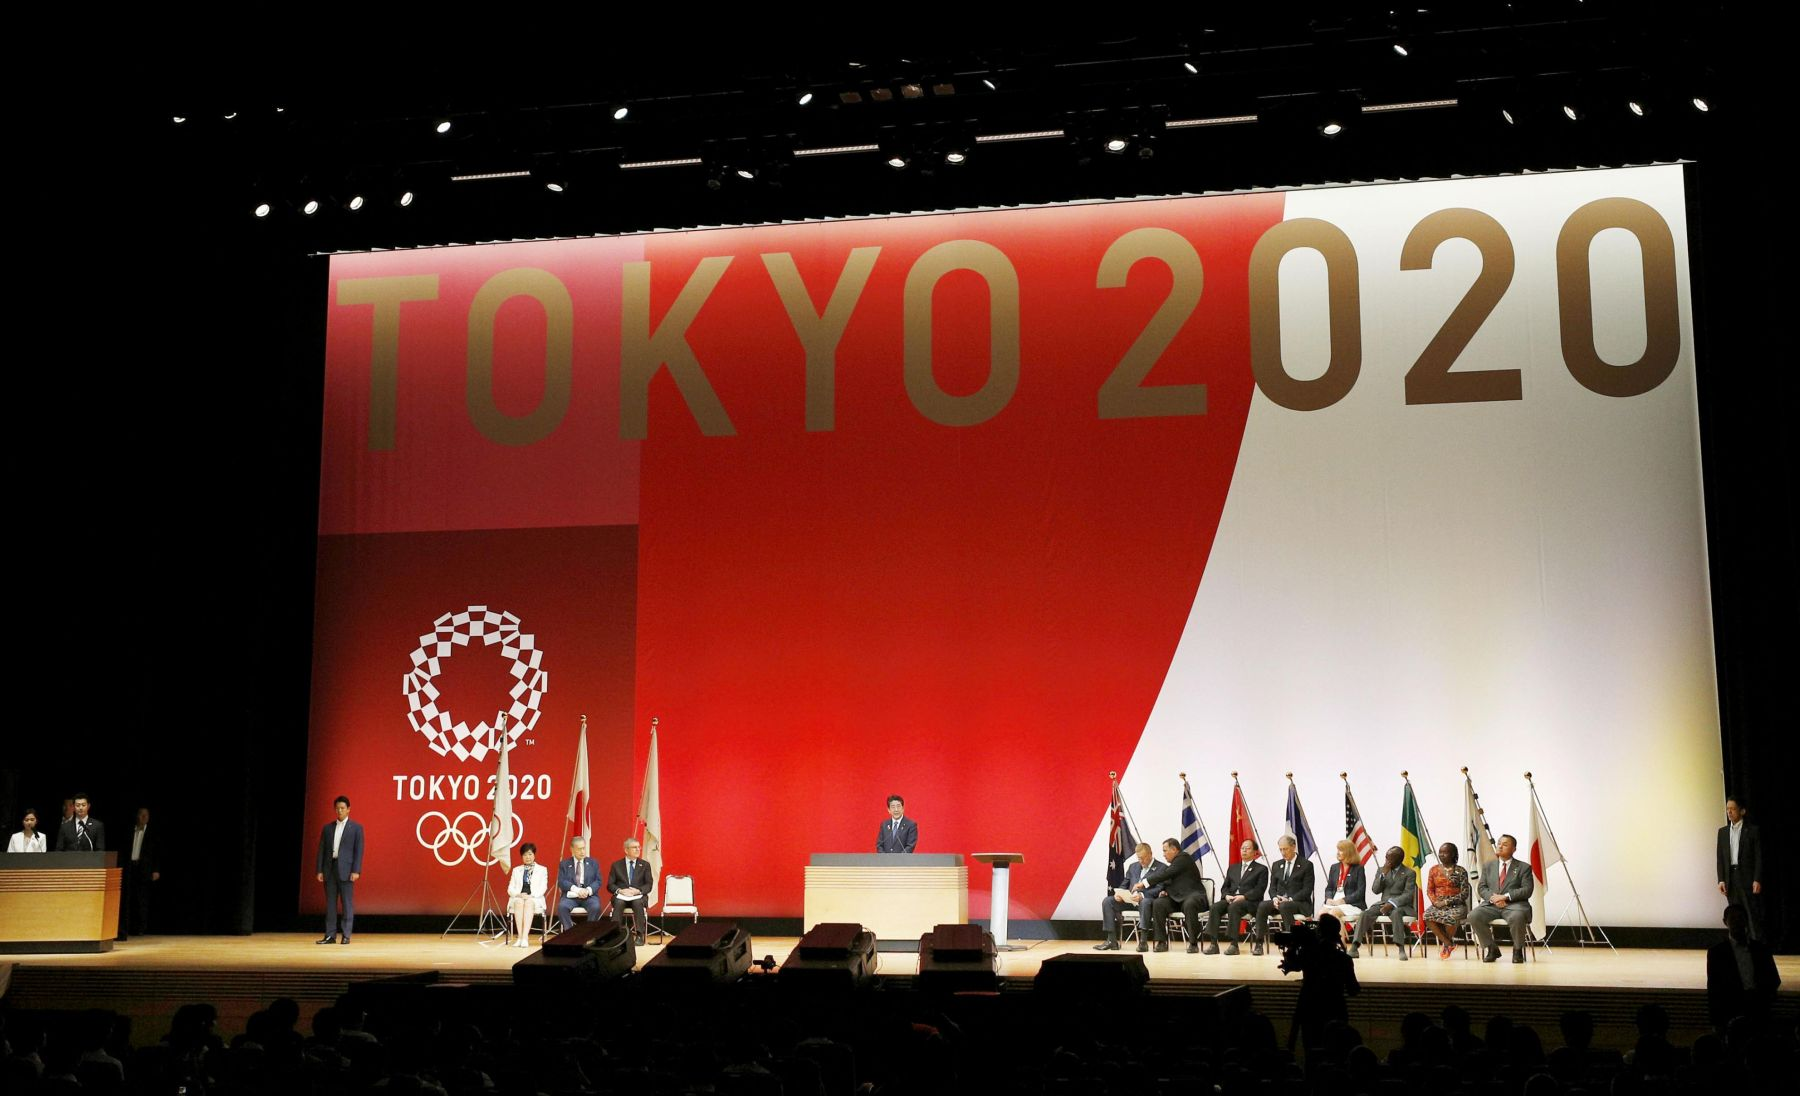 One Year Until Tokyo 2020 Olympic Games New National Stadium Medals Mascot Robots Events 025